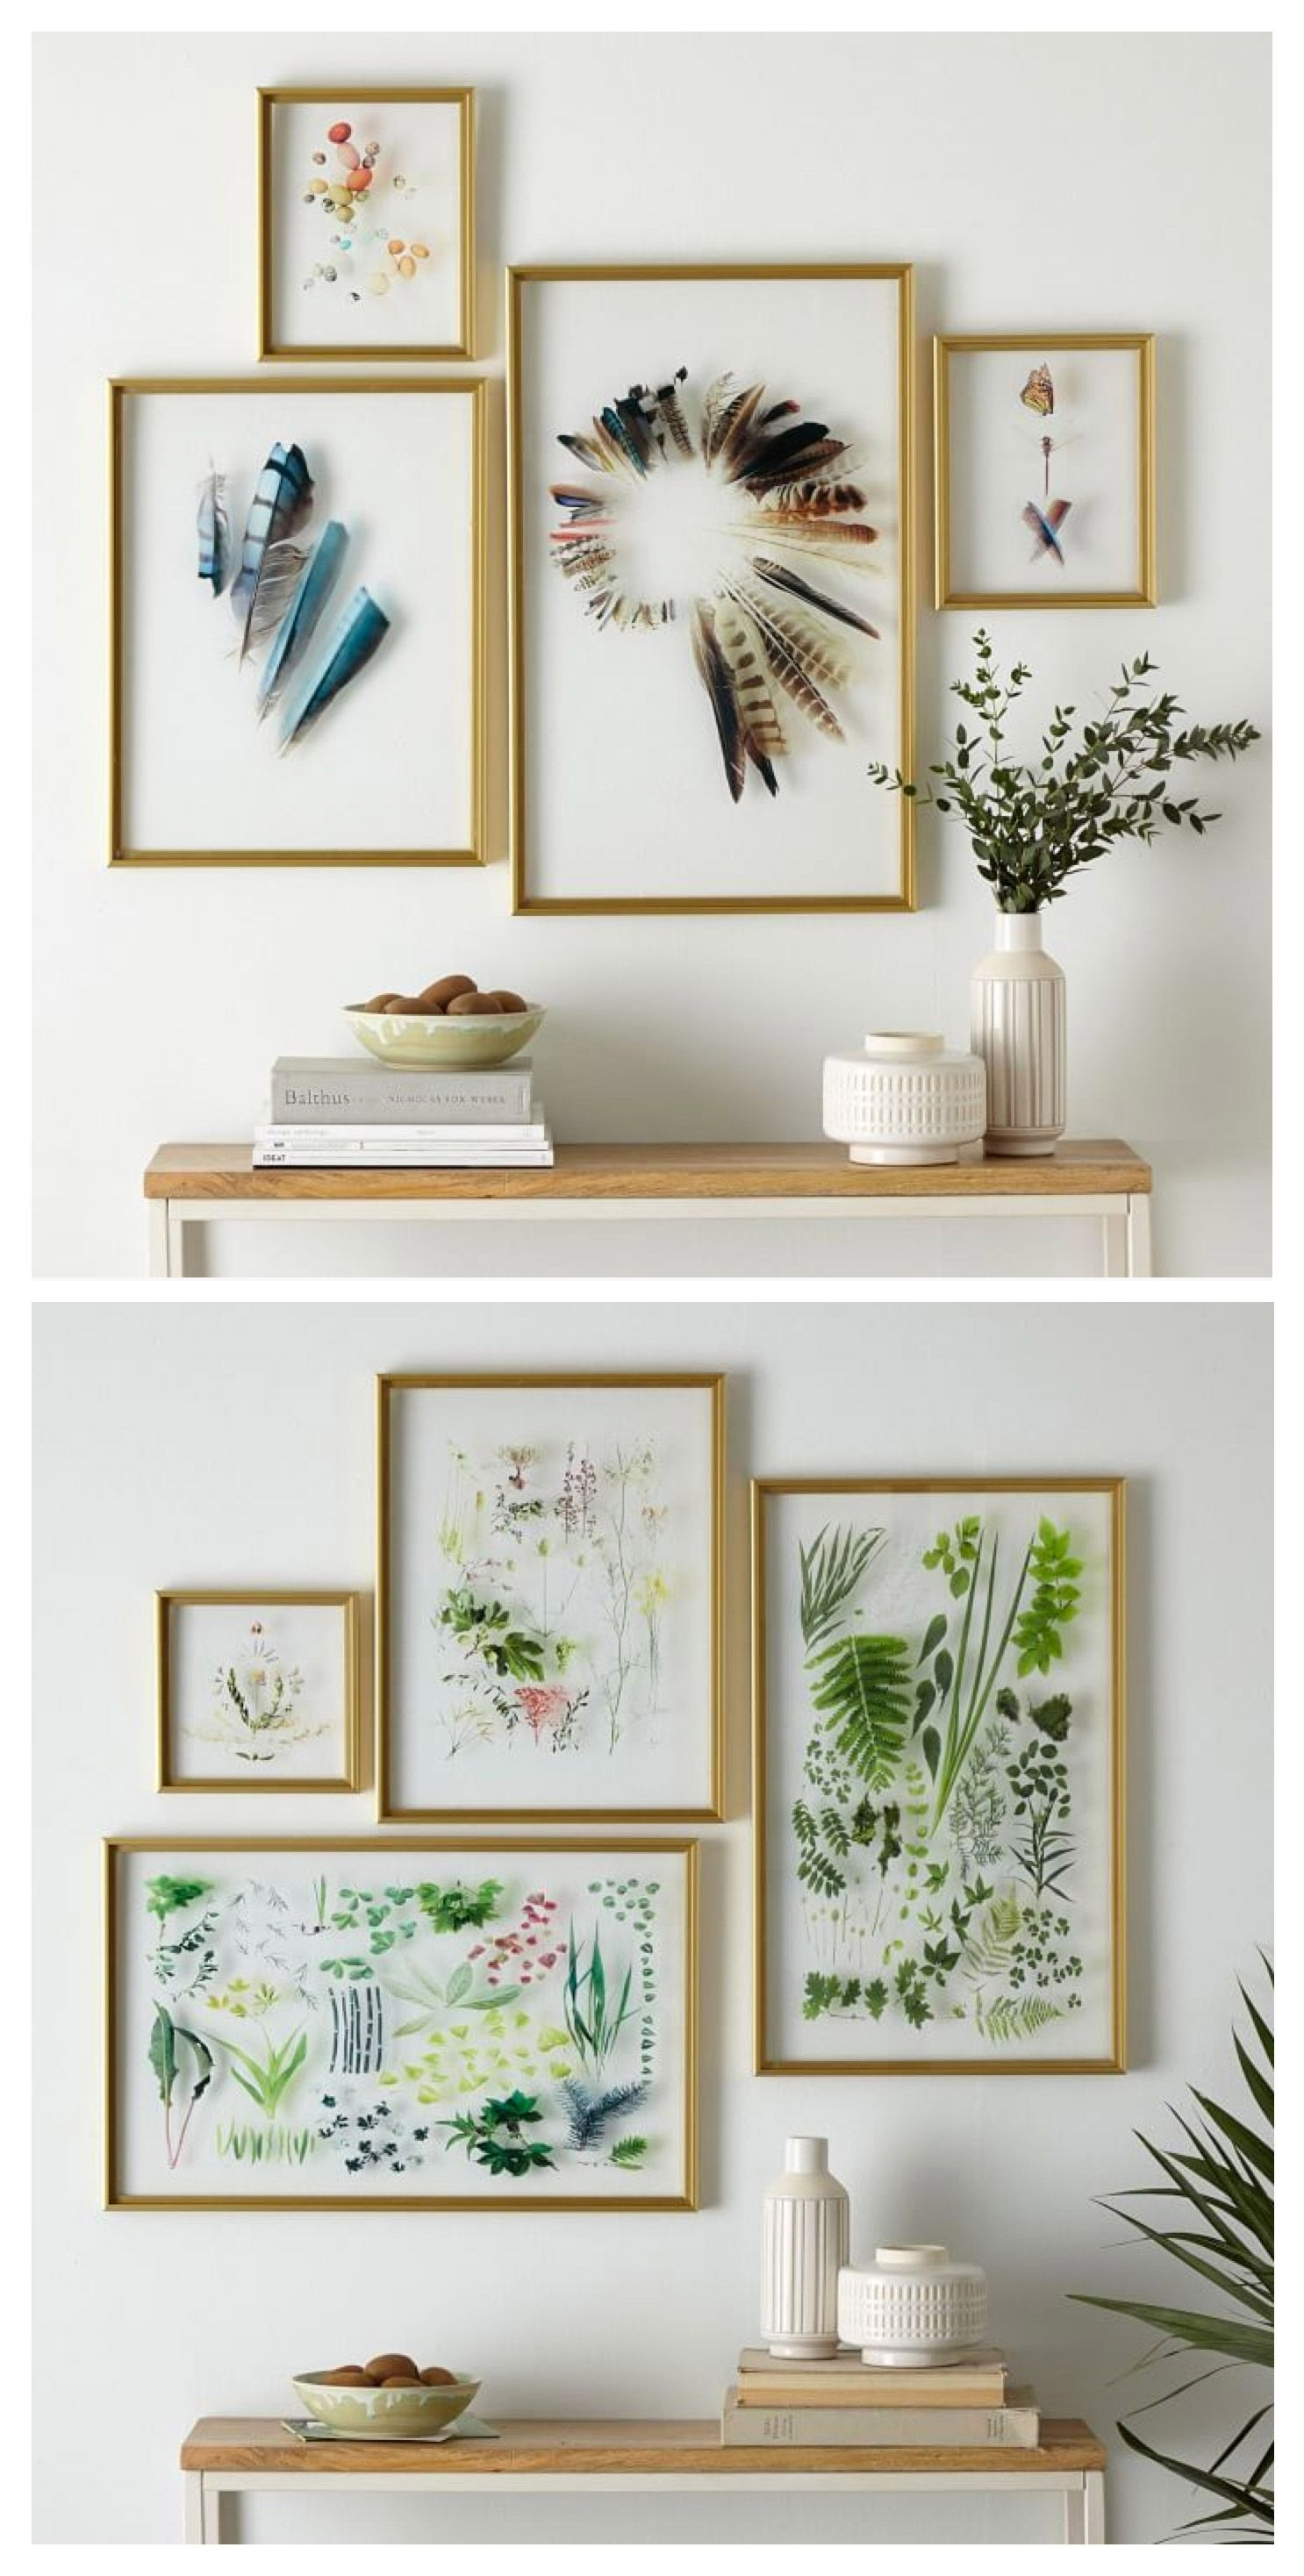 Still Acrylic Wall Art – Spring Botanicals | A Bit About Me With Regard To Most Recent West Elm Wall Art (View 14 of 20)